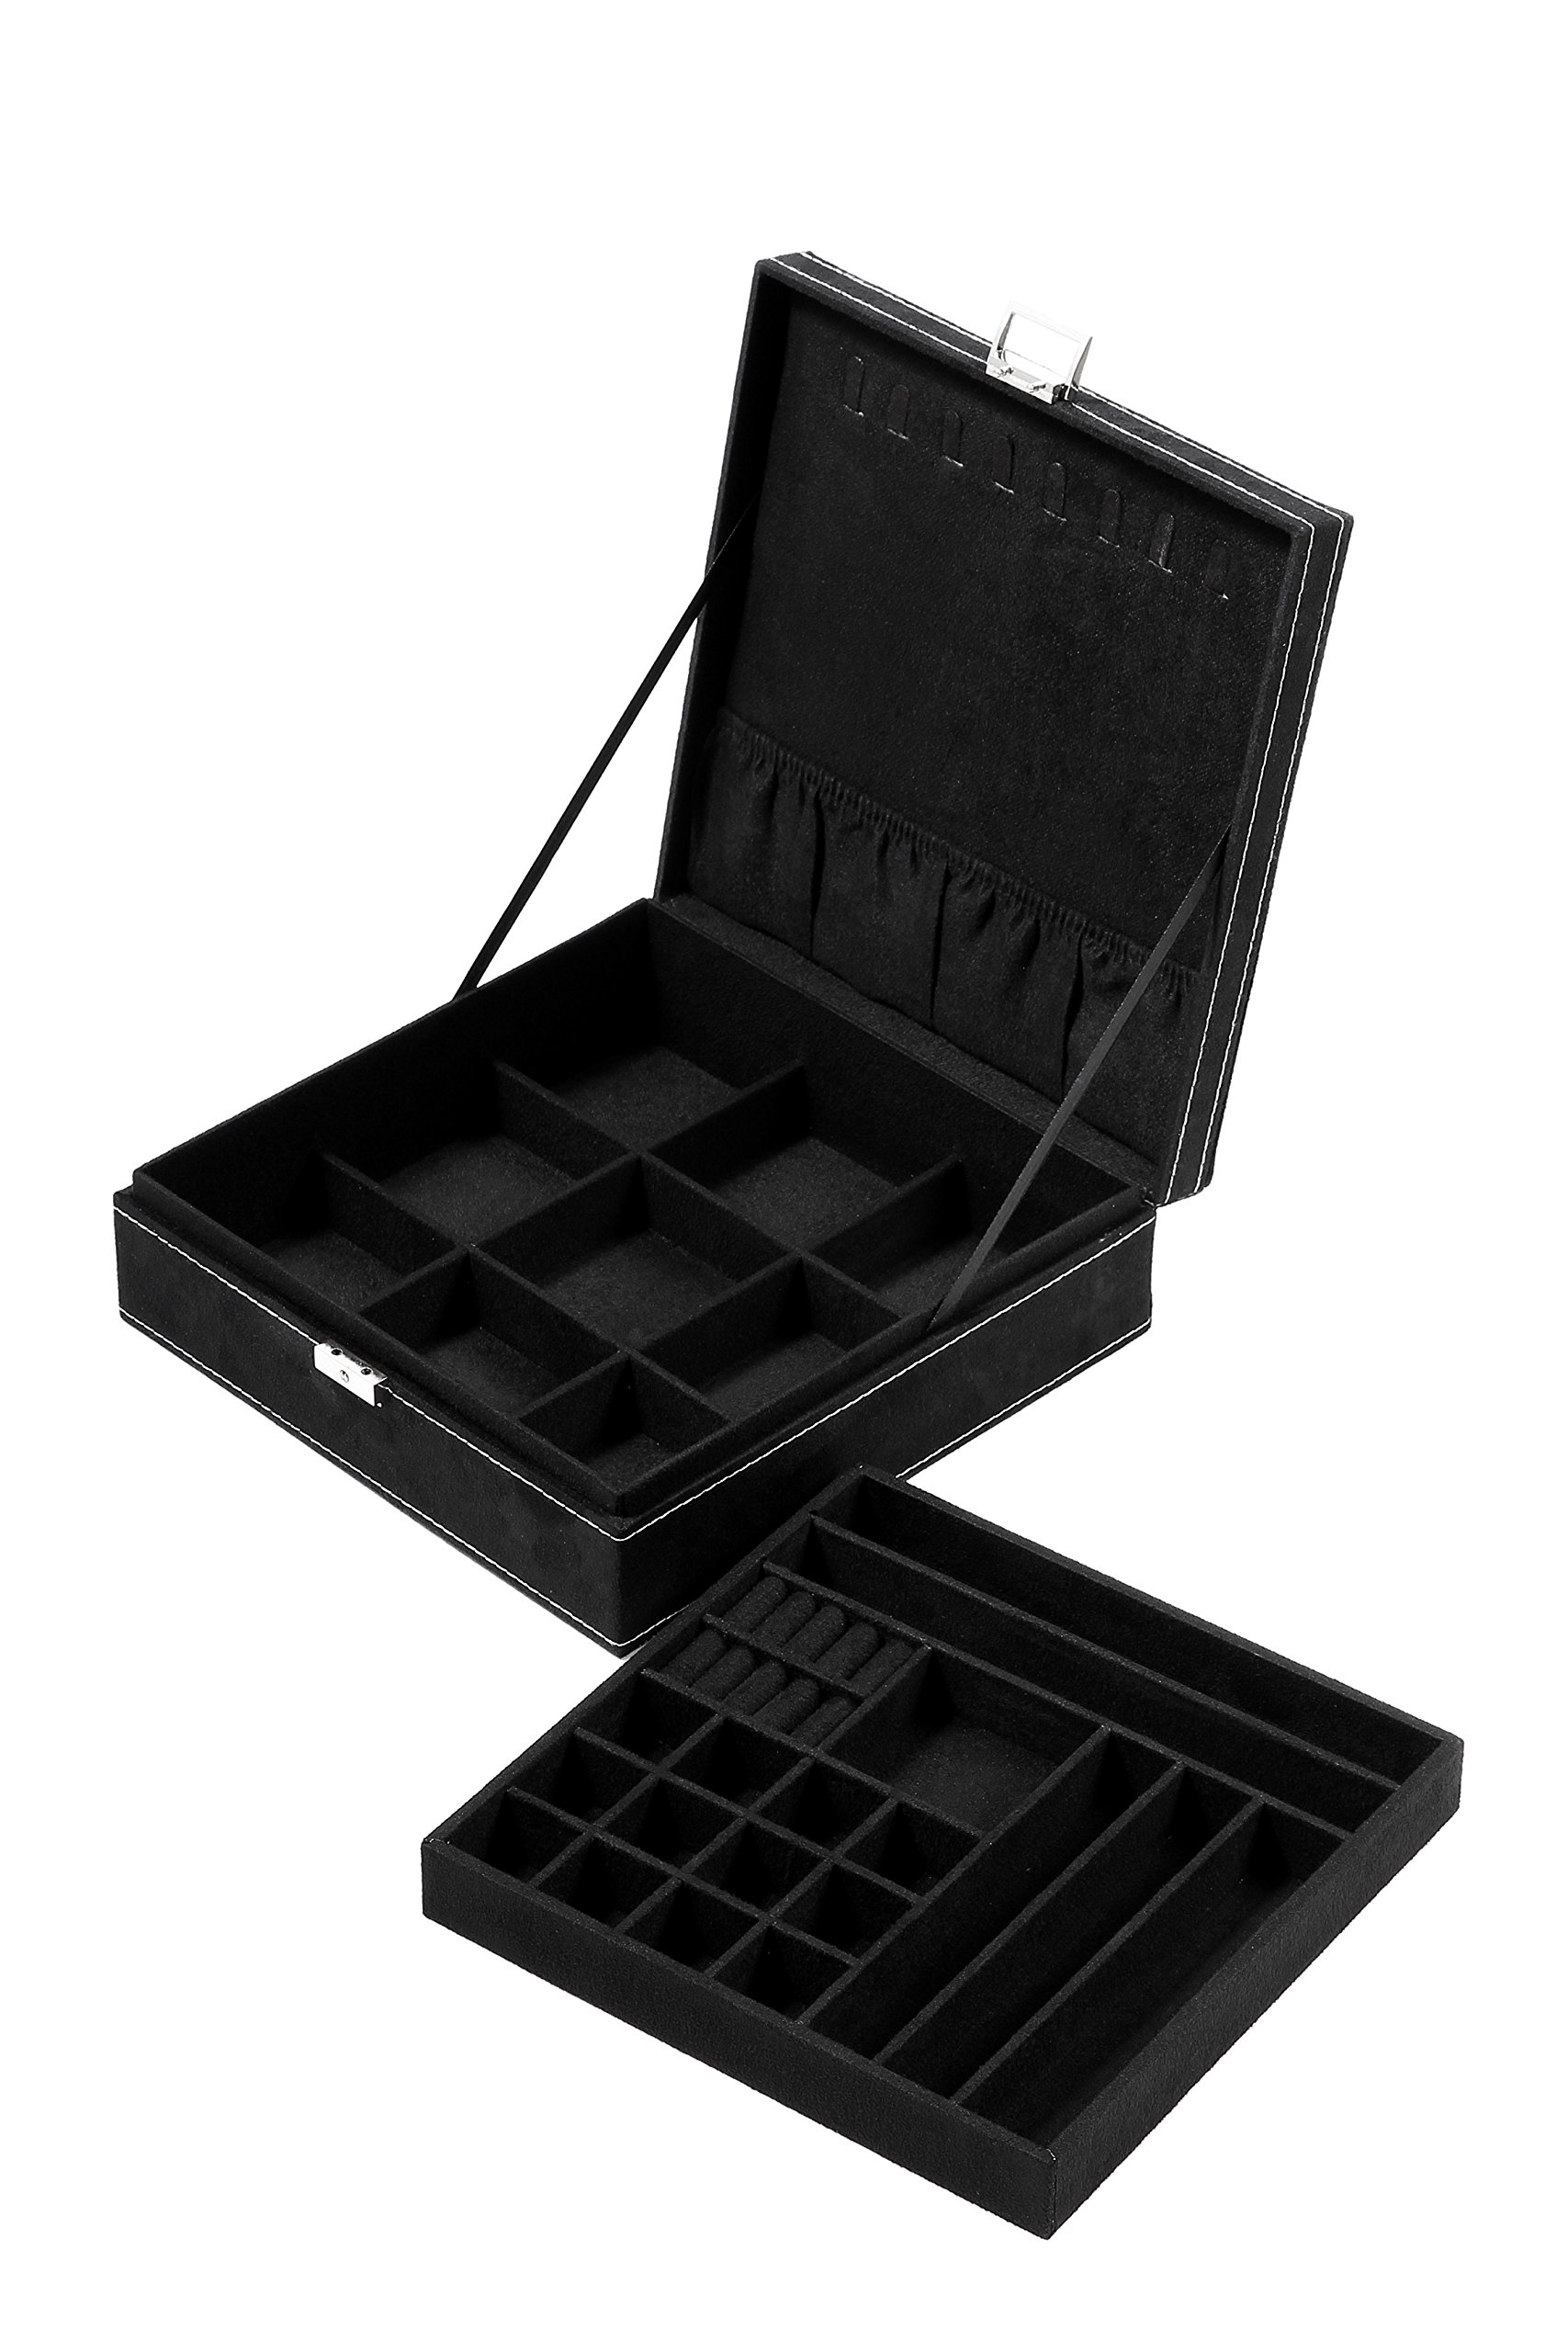 Two Layer Jewelry Box Organizer Display Storage Case Lock & Key - Velvety Smooth Texture - Removable Tray - Compact - Ample Storage Space - Black - 10.5 x 10.5 x 3.5 inches